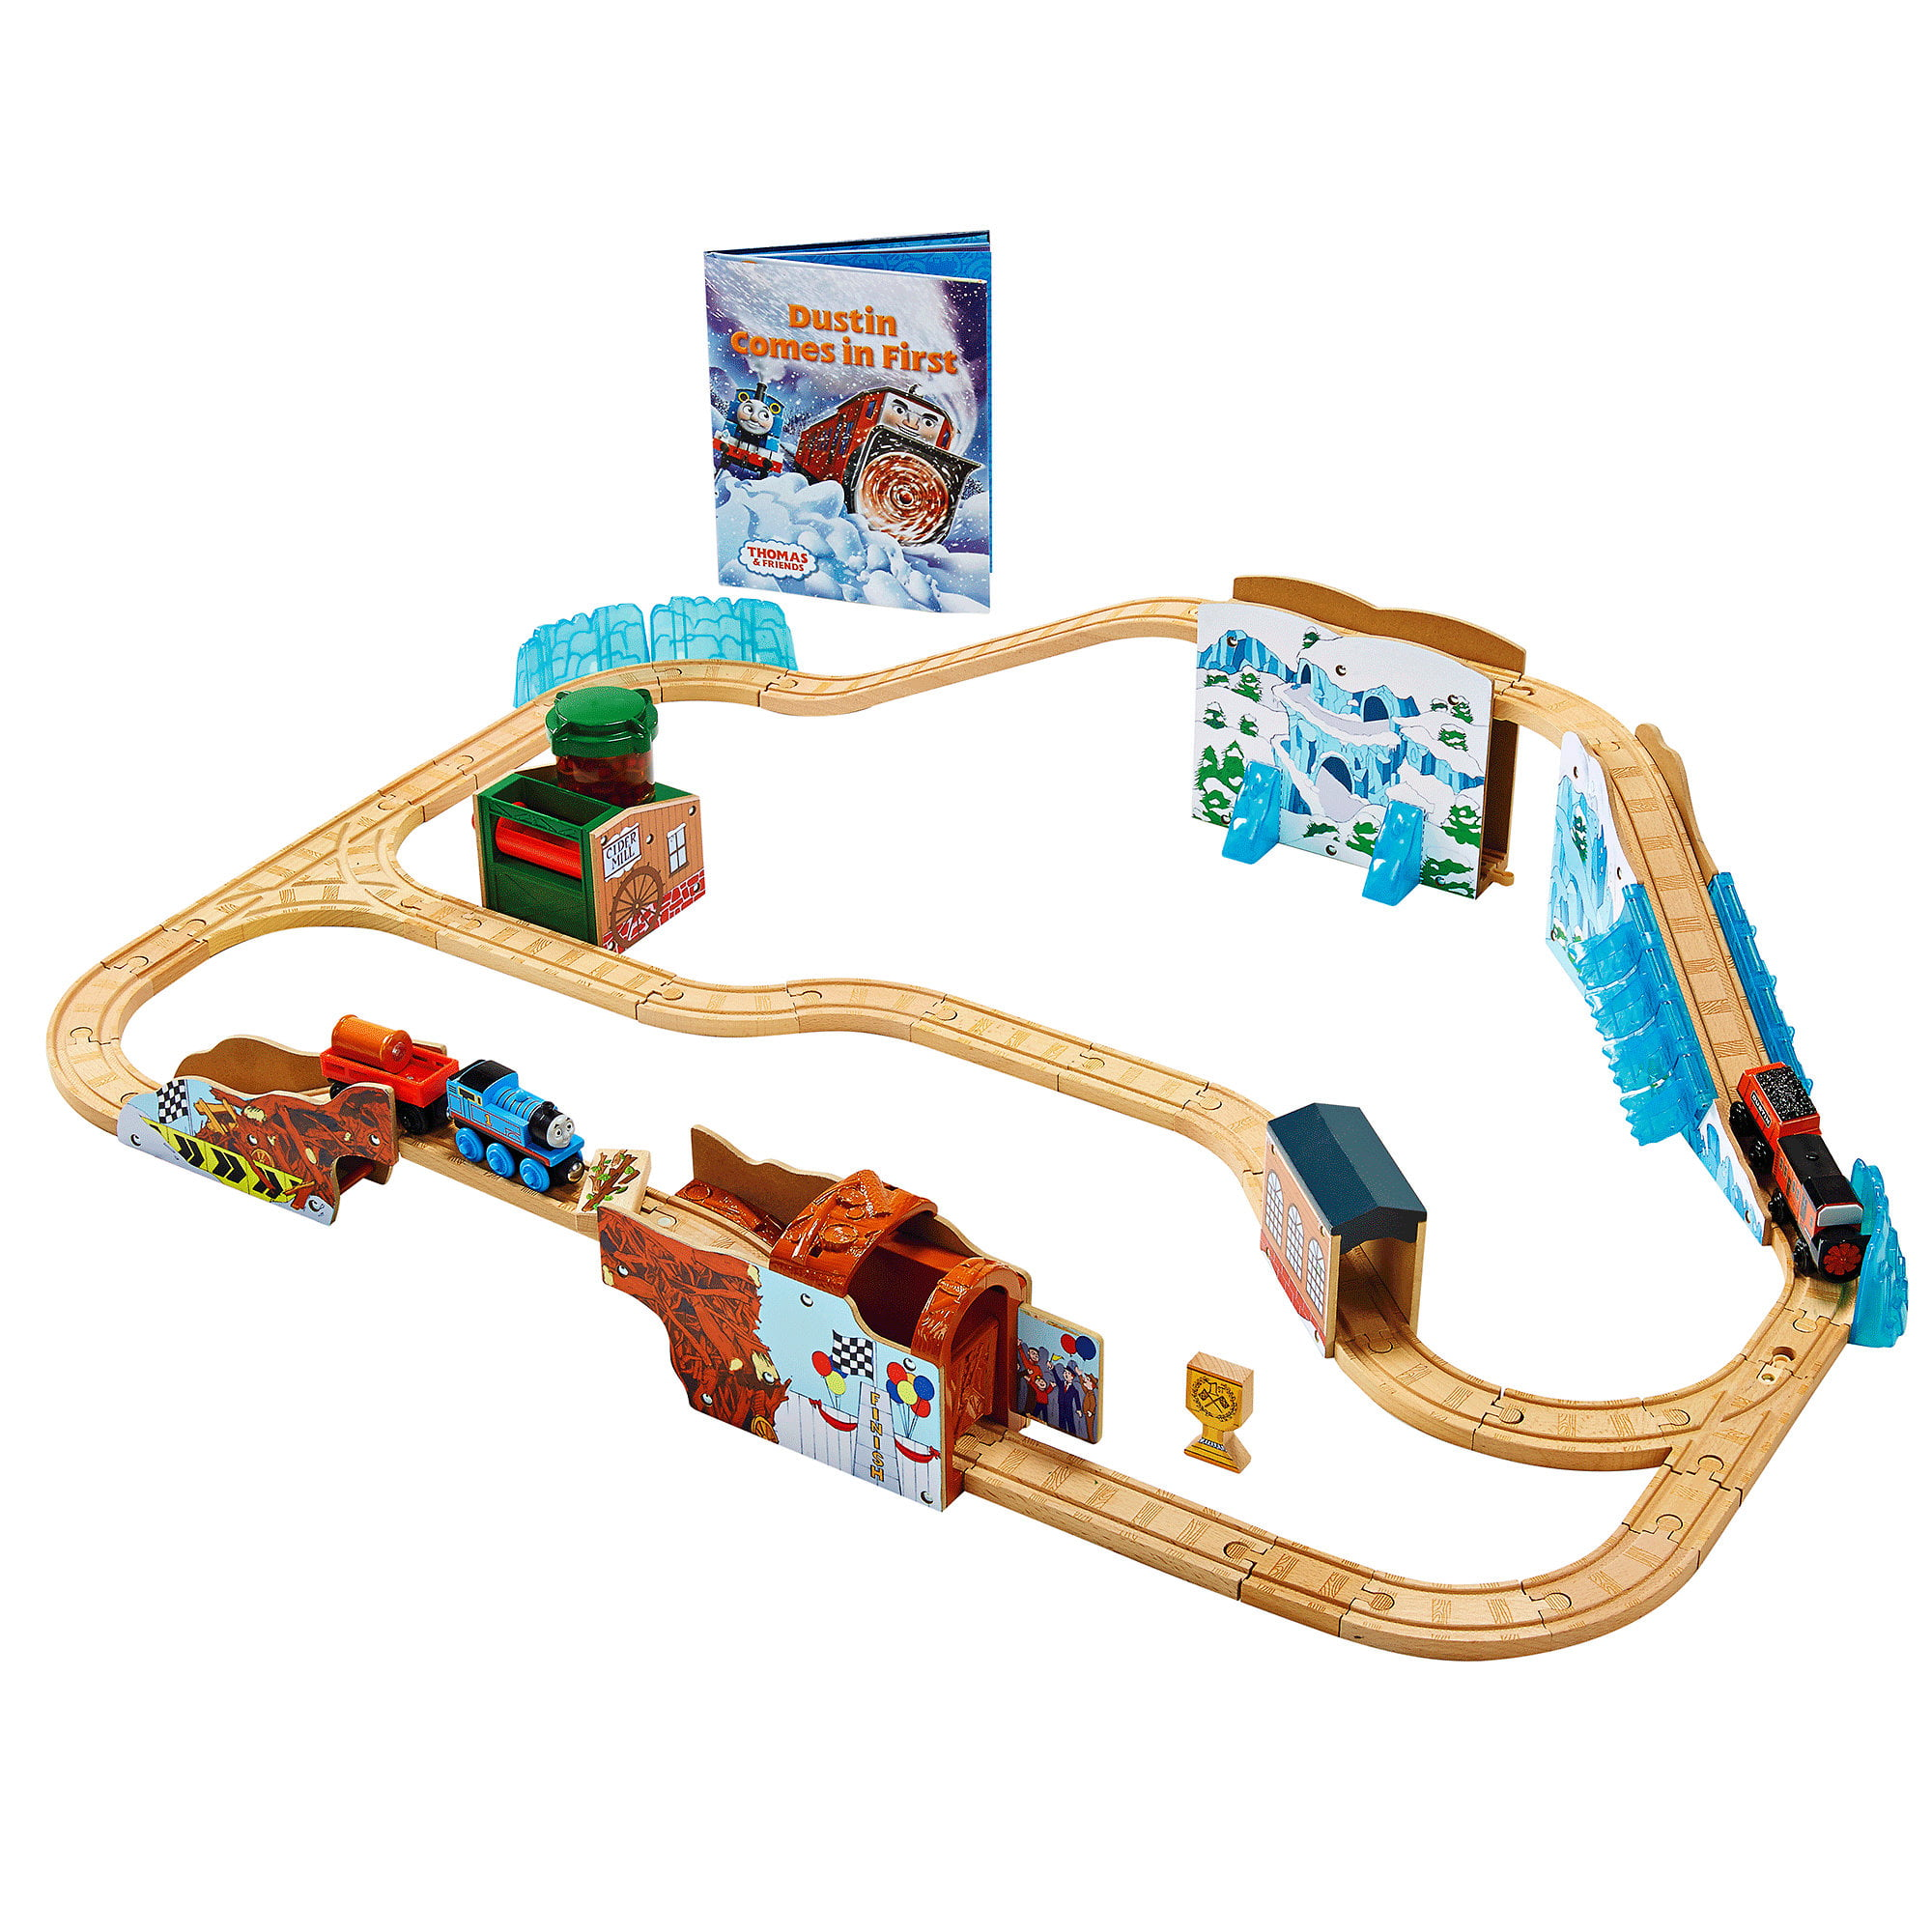 Fisher Price Thomas & Friends Dustin Comes In First Set by Mattel